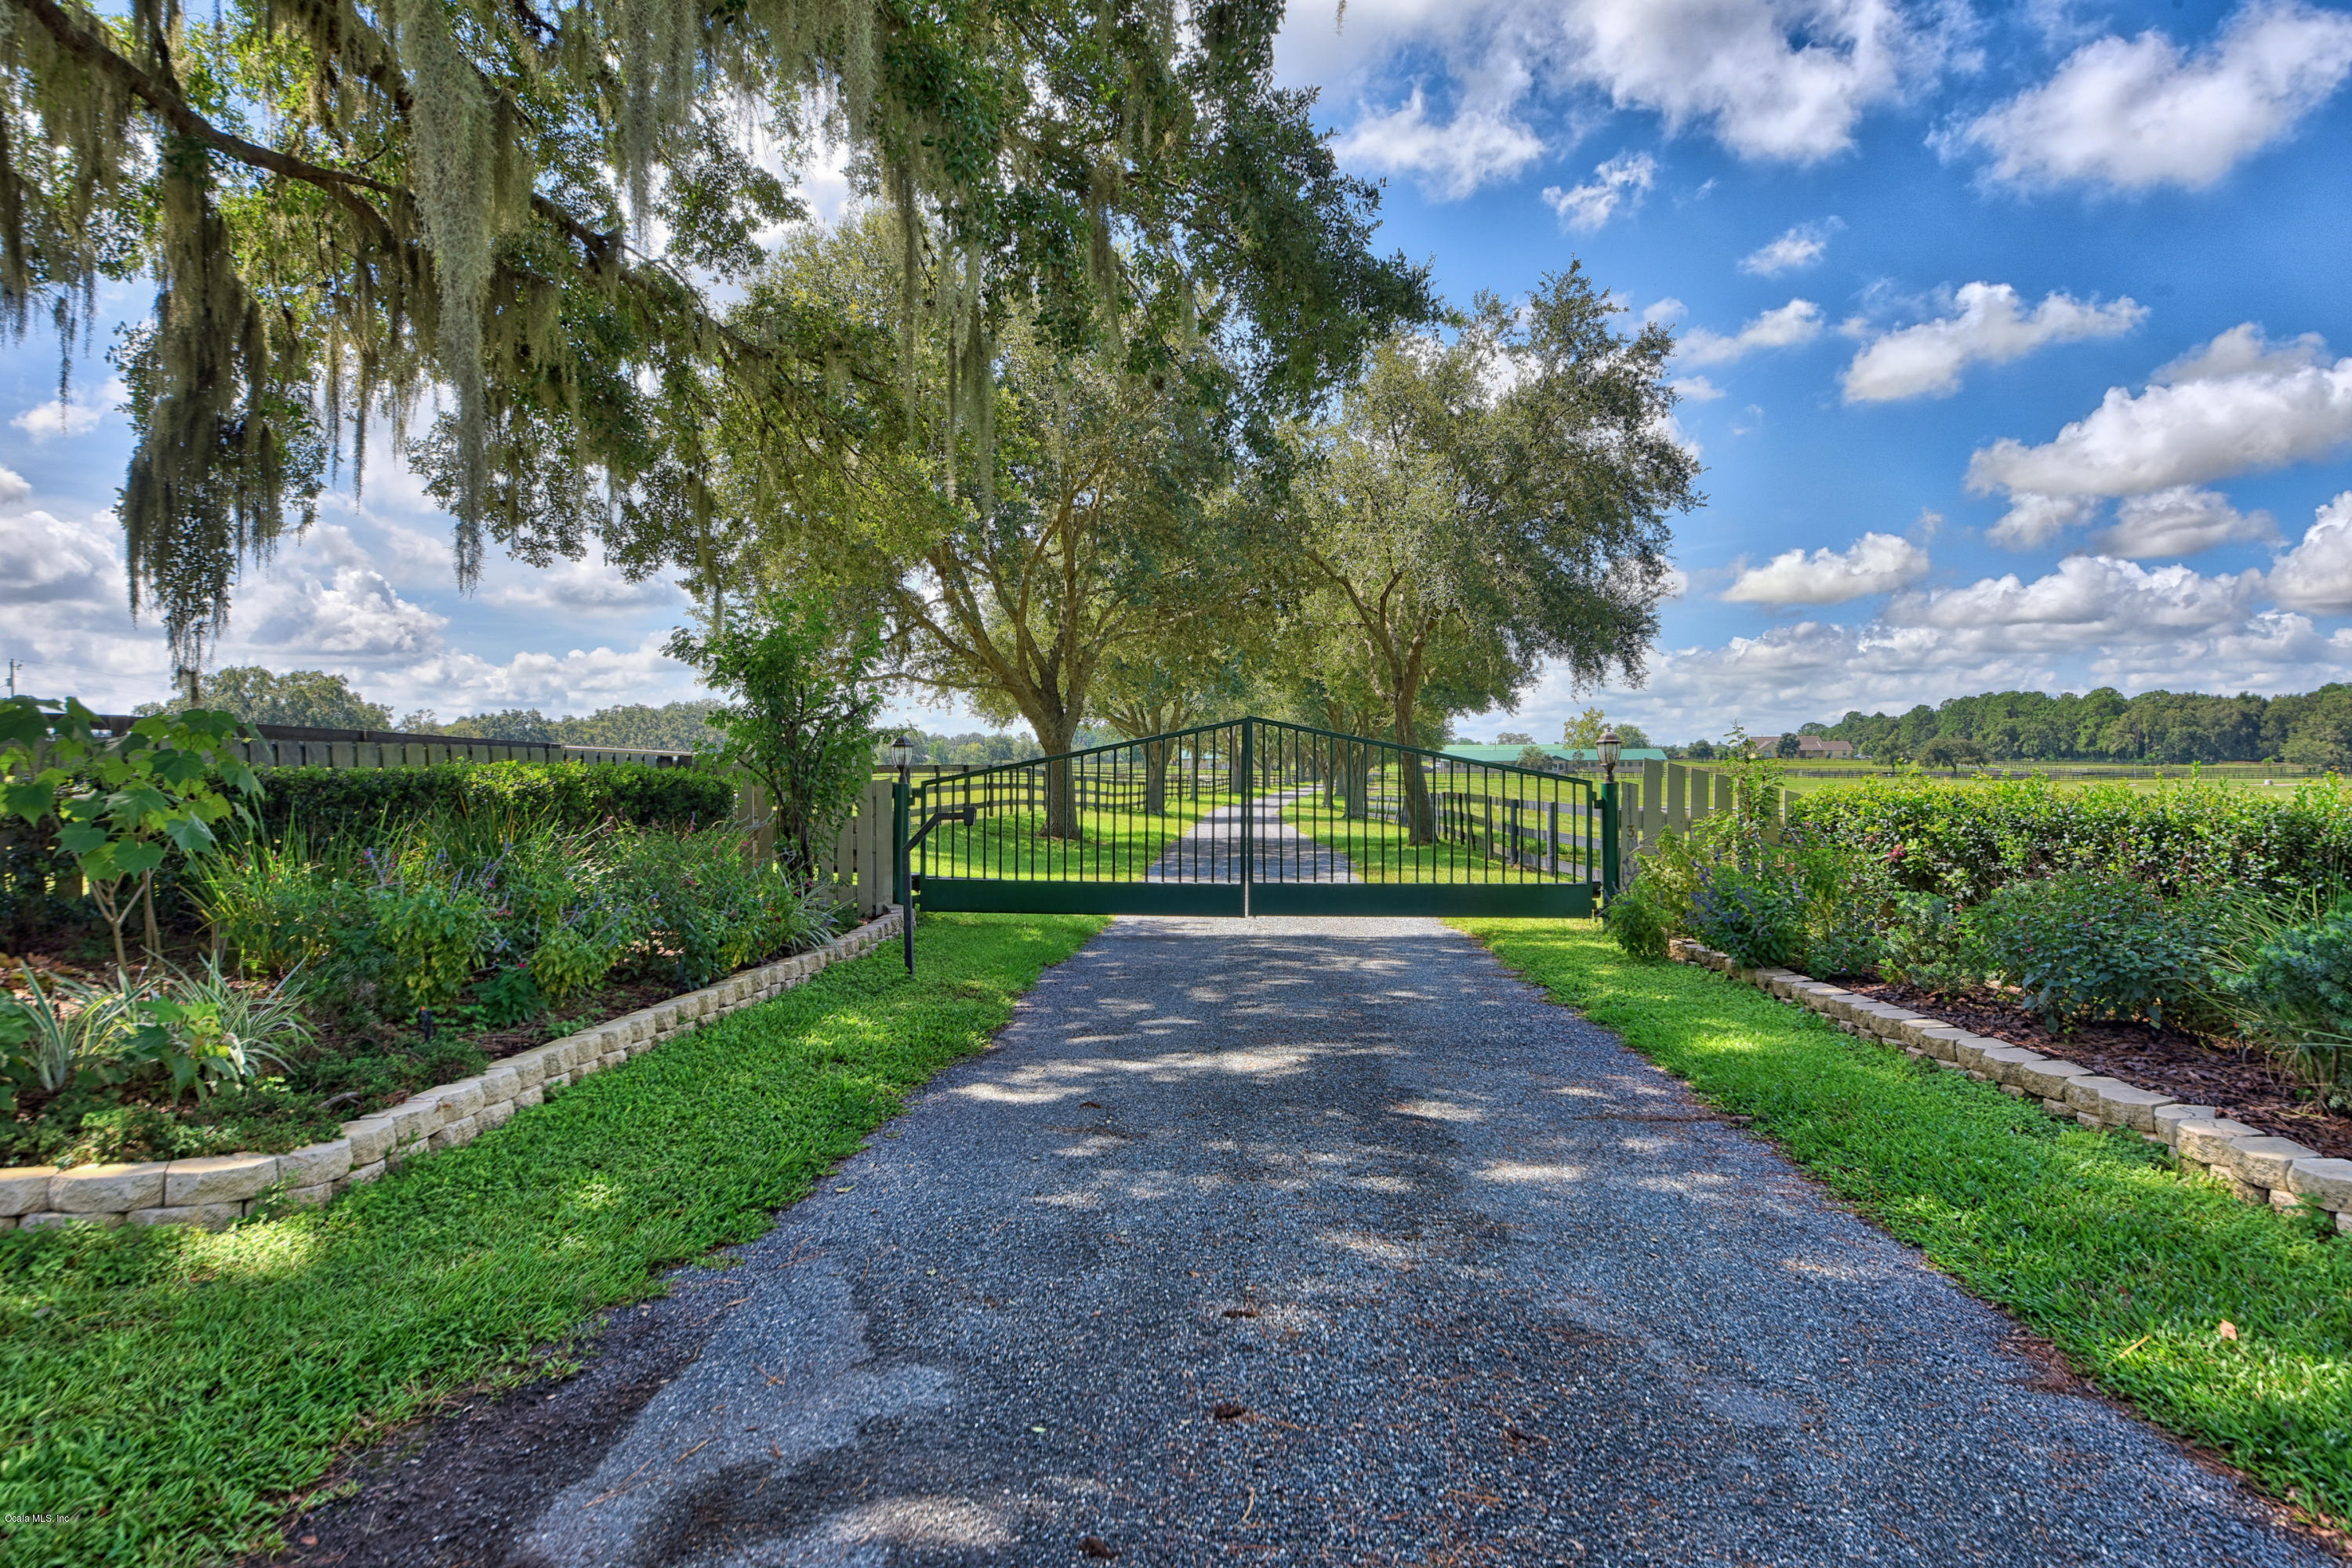 35 93 acres in Ocala for $1,300,000